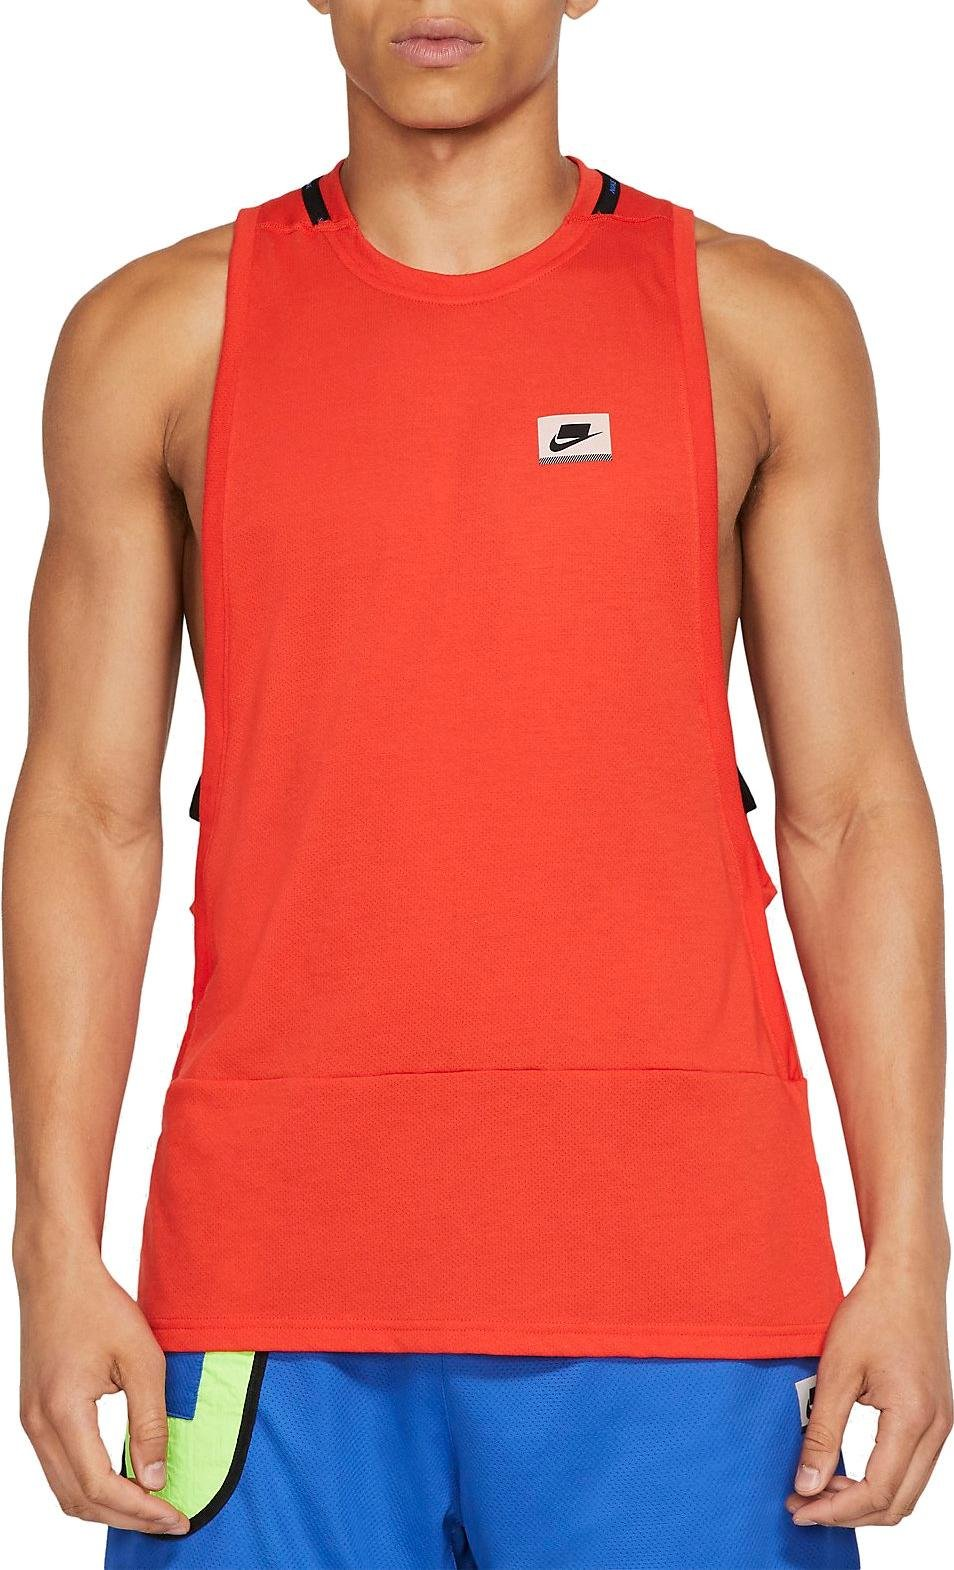 Maillot Nike M NK DRY TOP TANK PX